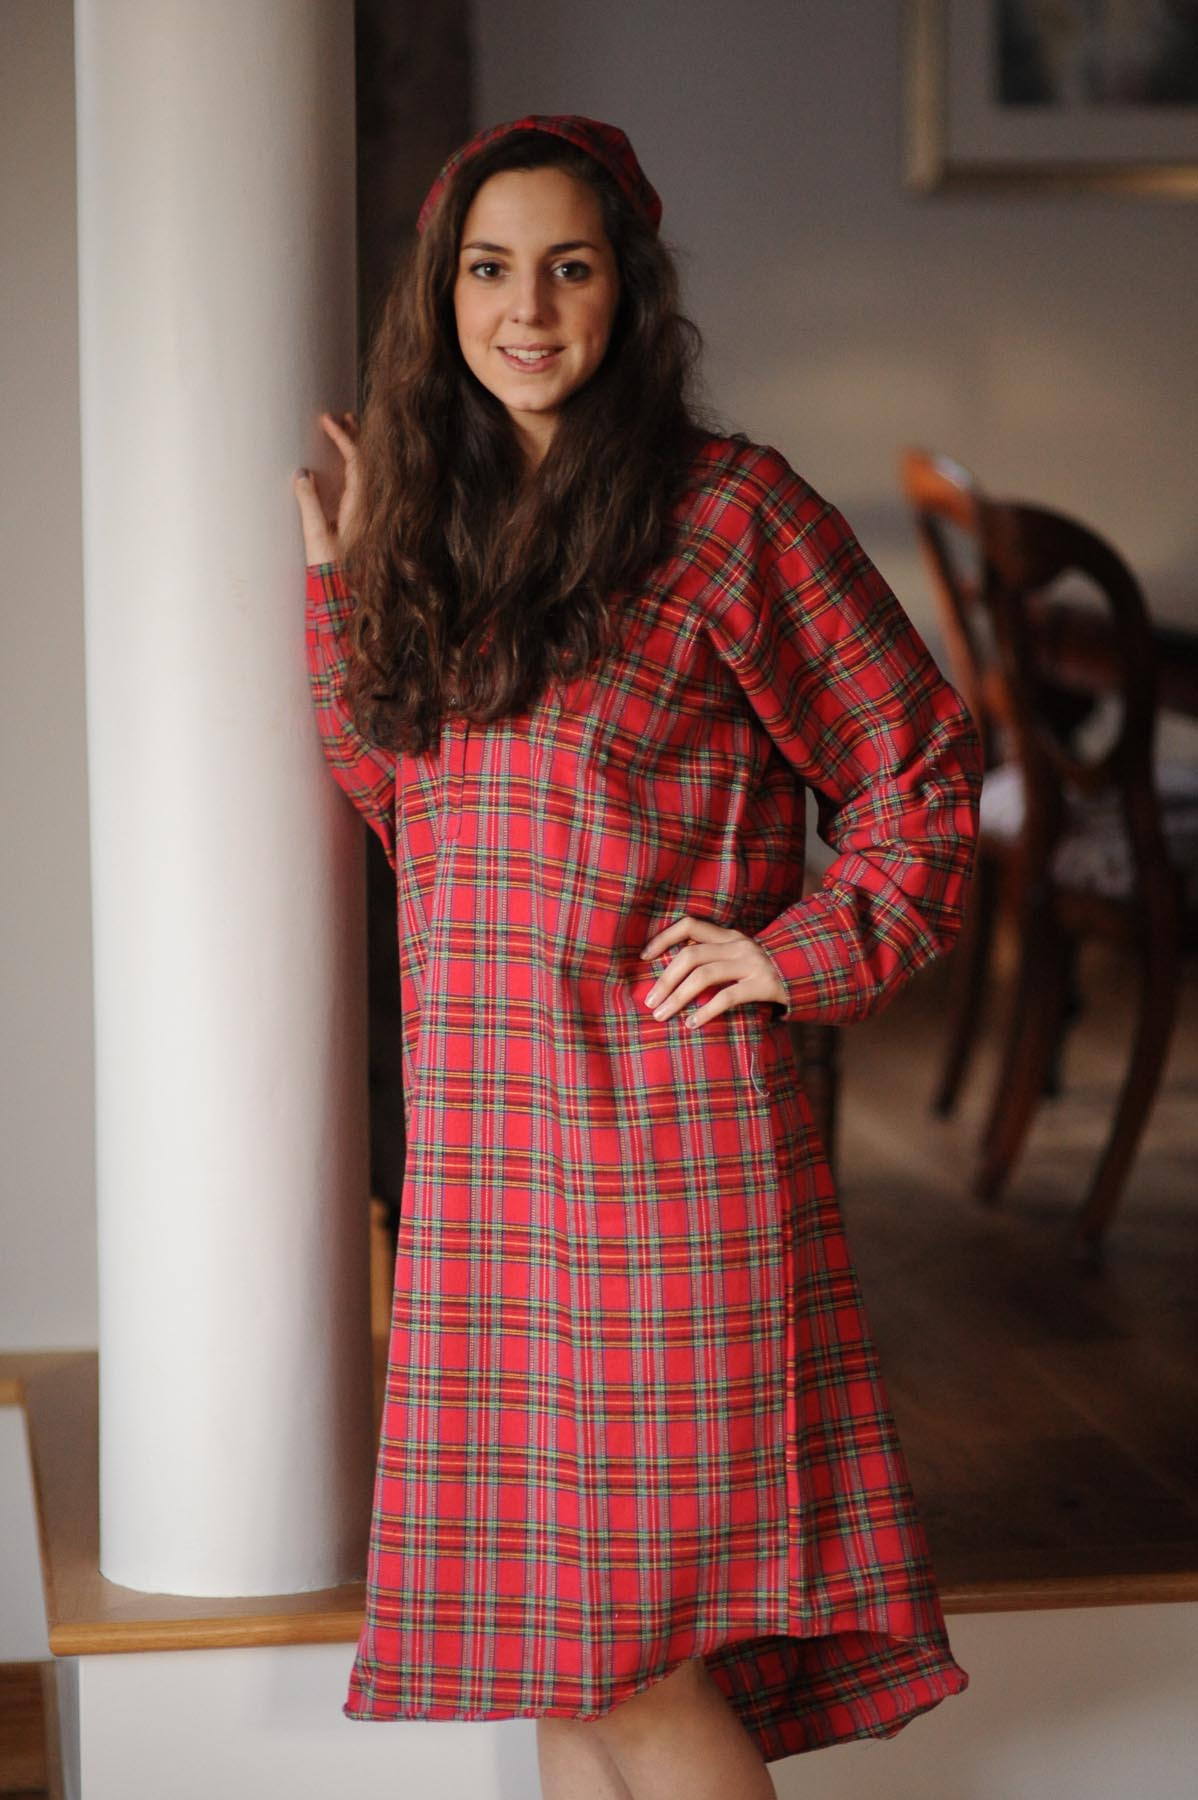 Gleneske Tartan Ladies Irish Nightshirt Royal Stewart